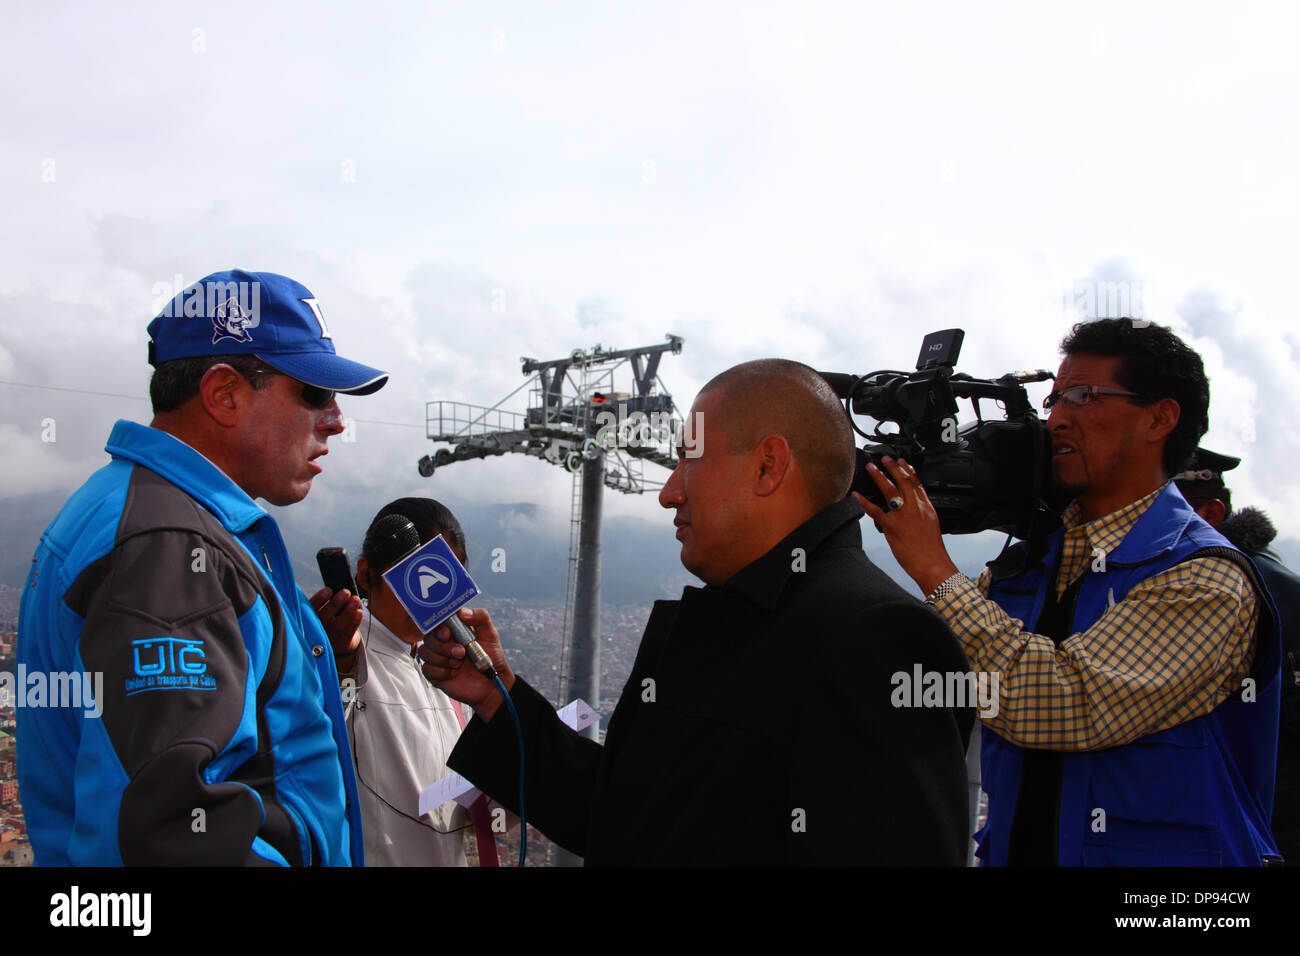 EL ALTO, BOLIVIA, 9th January 2014. The Unidad de Transporte por Cable (UTC) Project Coordinator César Dockweiler speaks to the press during construction of the new cable car / gondola lift system to link the city to La Paz below. Credit:  James Brunker / Alamy Live News - Stock Image